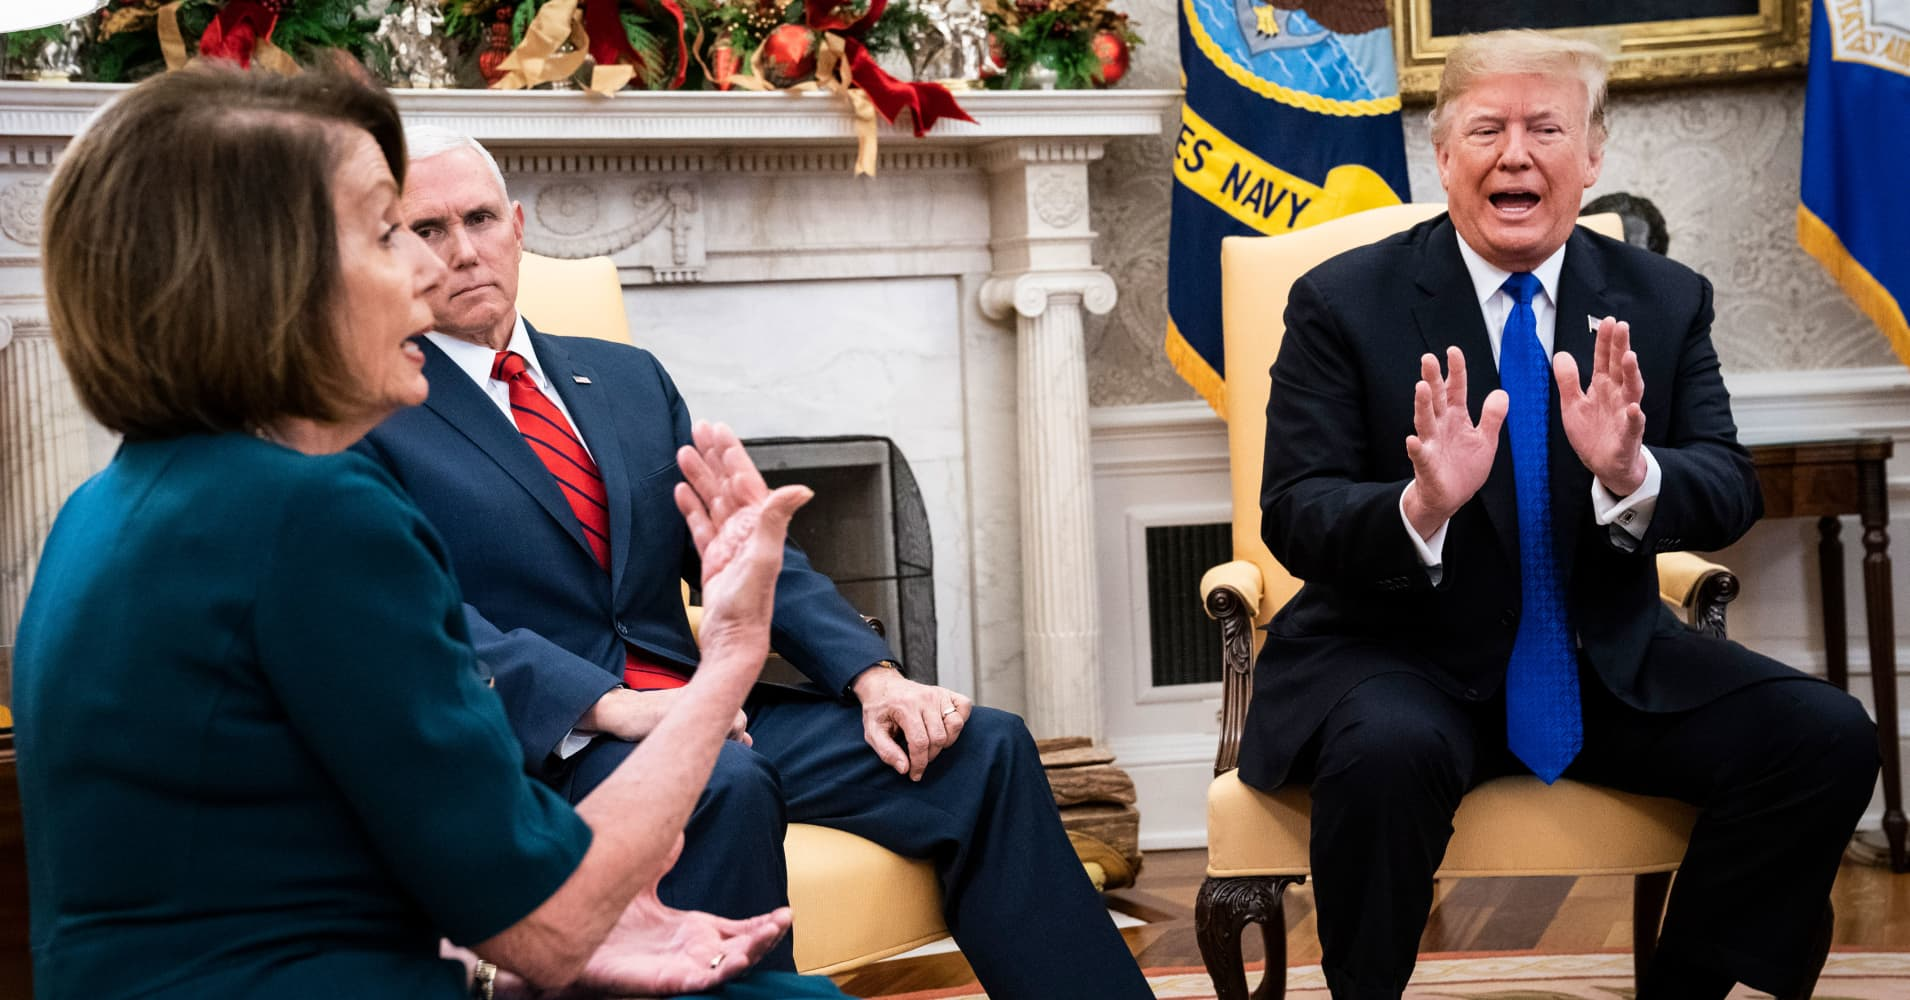 President Donald J. Trump debates with House Minority Leader Nancy Pelosi, D-Calif., left, as Senate Minority Leader Chuck Schumer, D-N.Y., and Vice President Mike Pence listen during a meeting in the Oval Office of White House on Tuesday, Dec. 11, 2018 in Washington, DC.